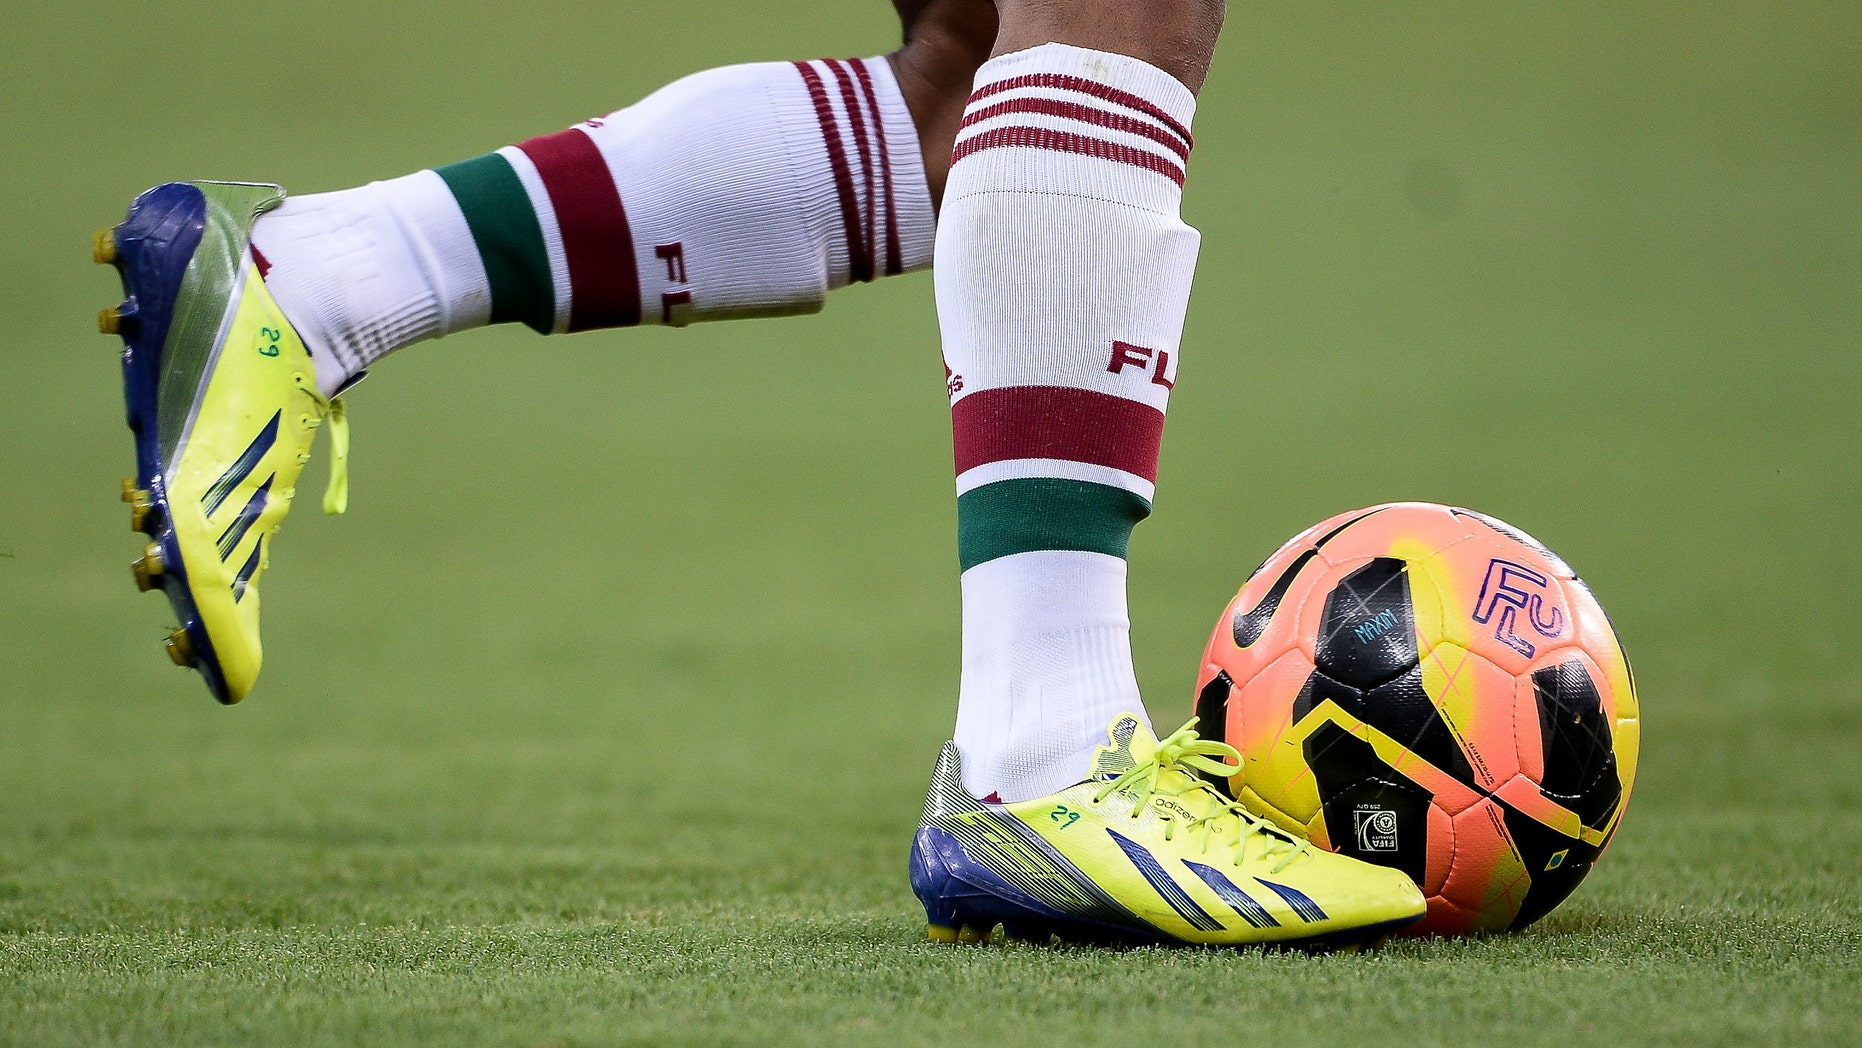 RIO DE JANEIRO, BRAZIL - OCTOBER 27: Detail of Fluminense boot shoes during a match between Fluminense and Vitoria as part of Brazilian Serie A 2013  at Aterro do Flamengo on October 27, 2013 in Rio de Janeiro, Brazil. (Photo by Buda Mendes/Getty Images)